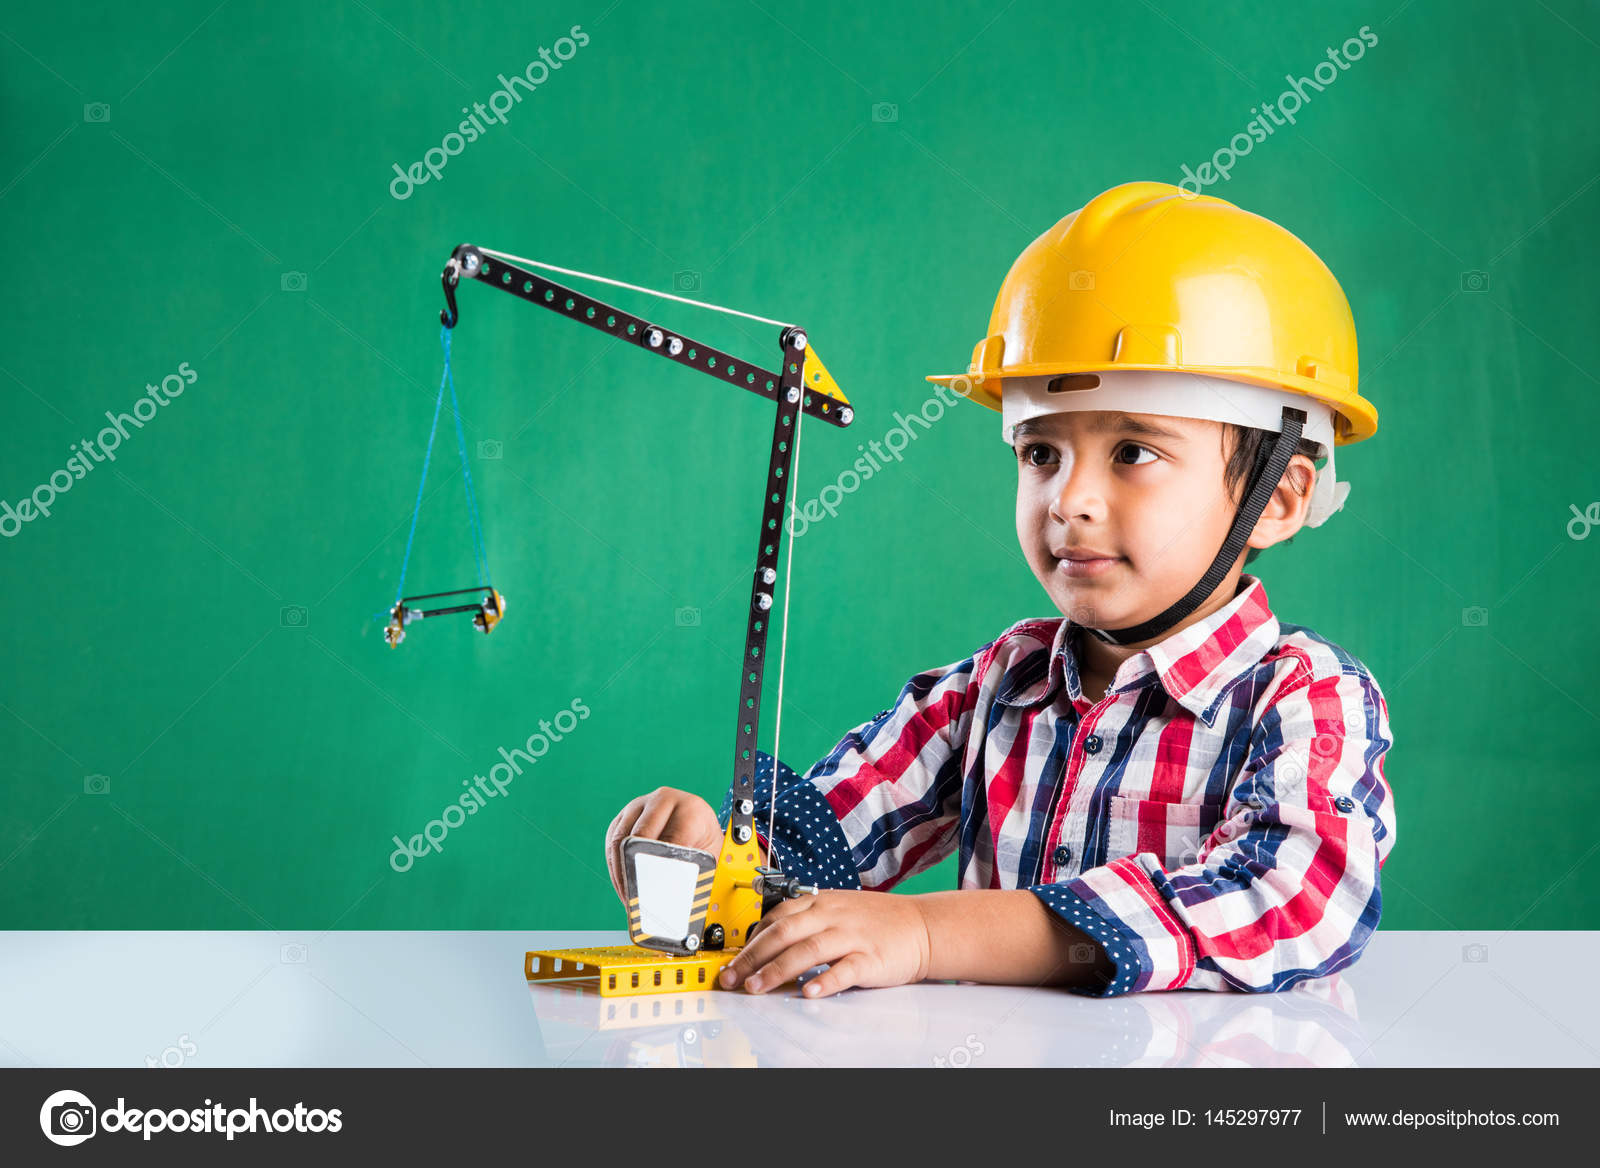 Cute indian baby boy playing with toy crane wearing yellow construction hat  or hard hat a2c7dd850b6